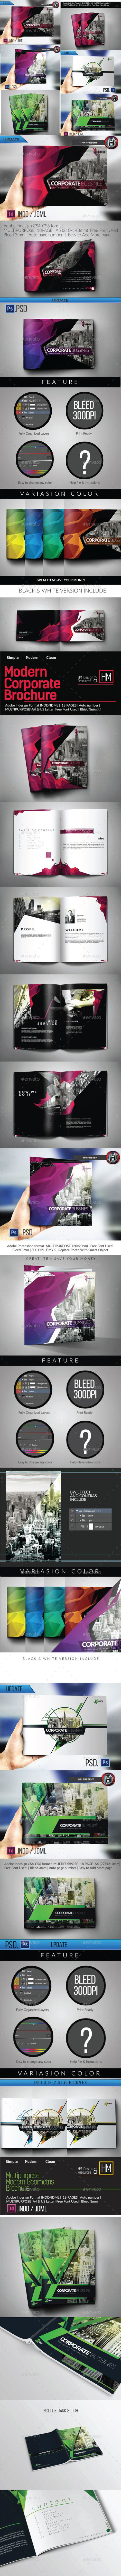 5 Brochure Bundle Potrait & Lanscape